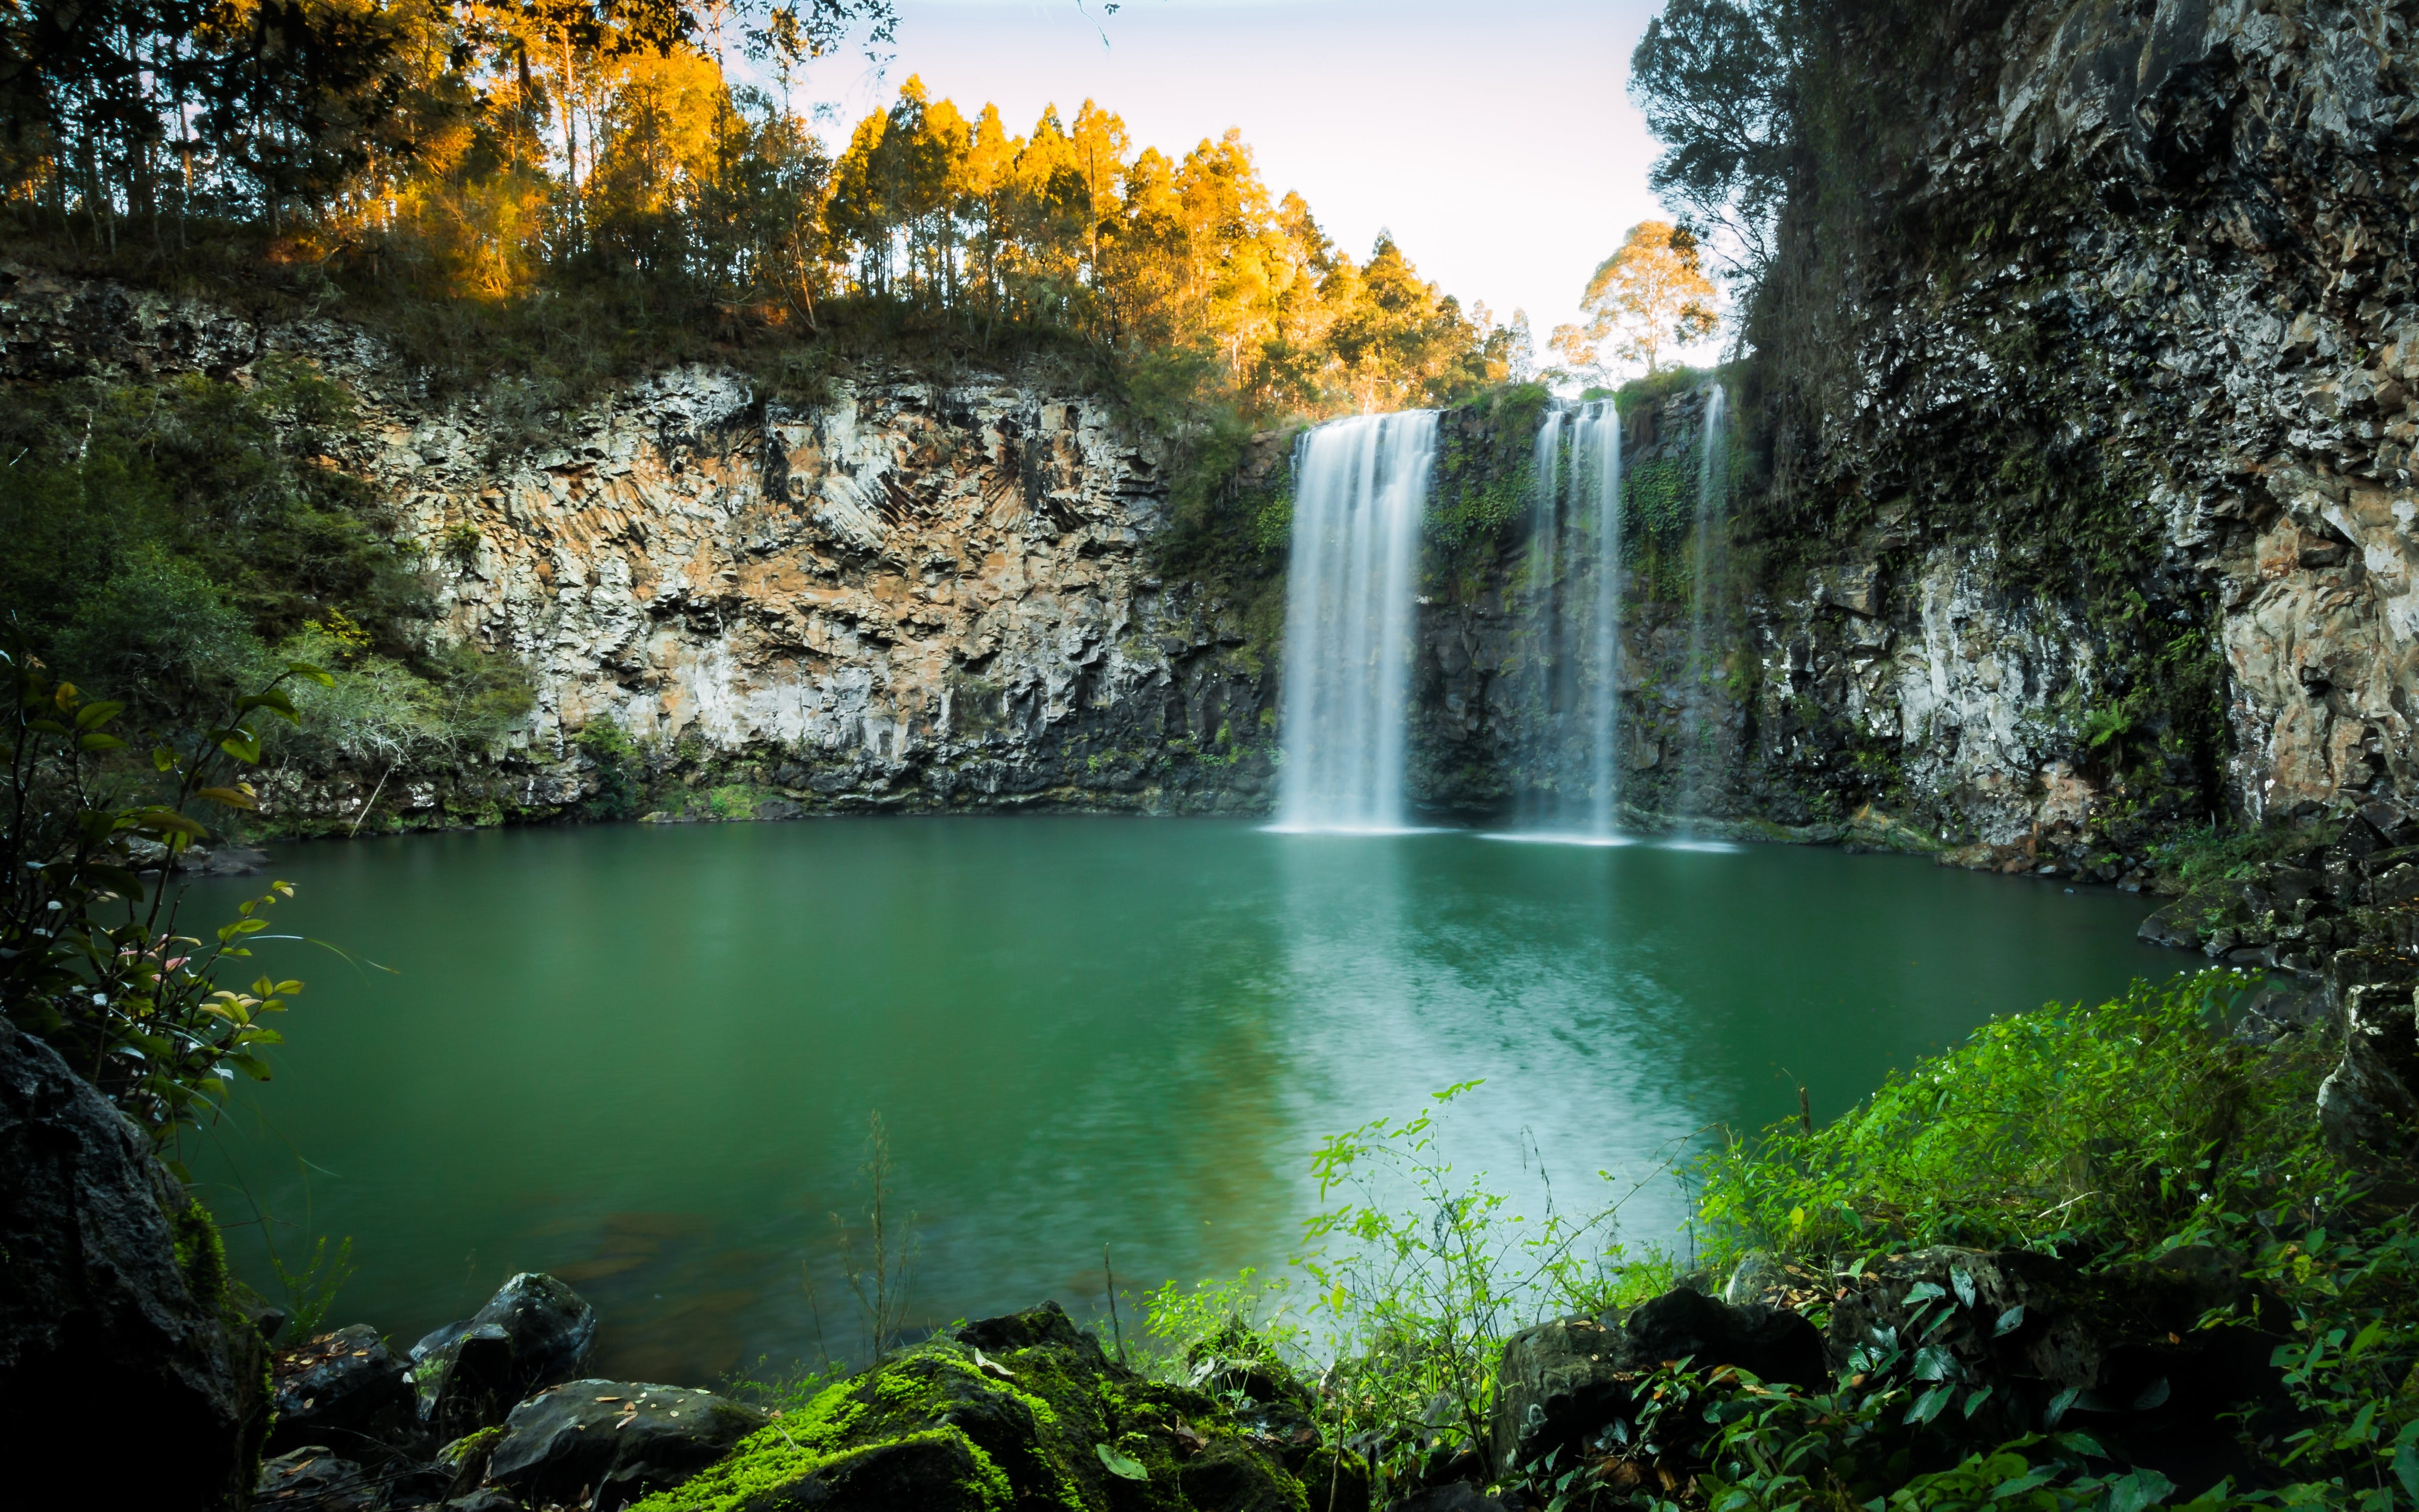 Dangar Falls - Accommodation Sunshine Coast